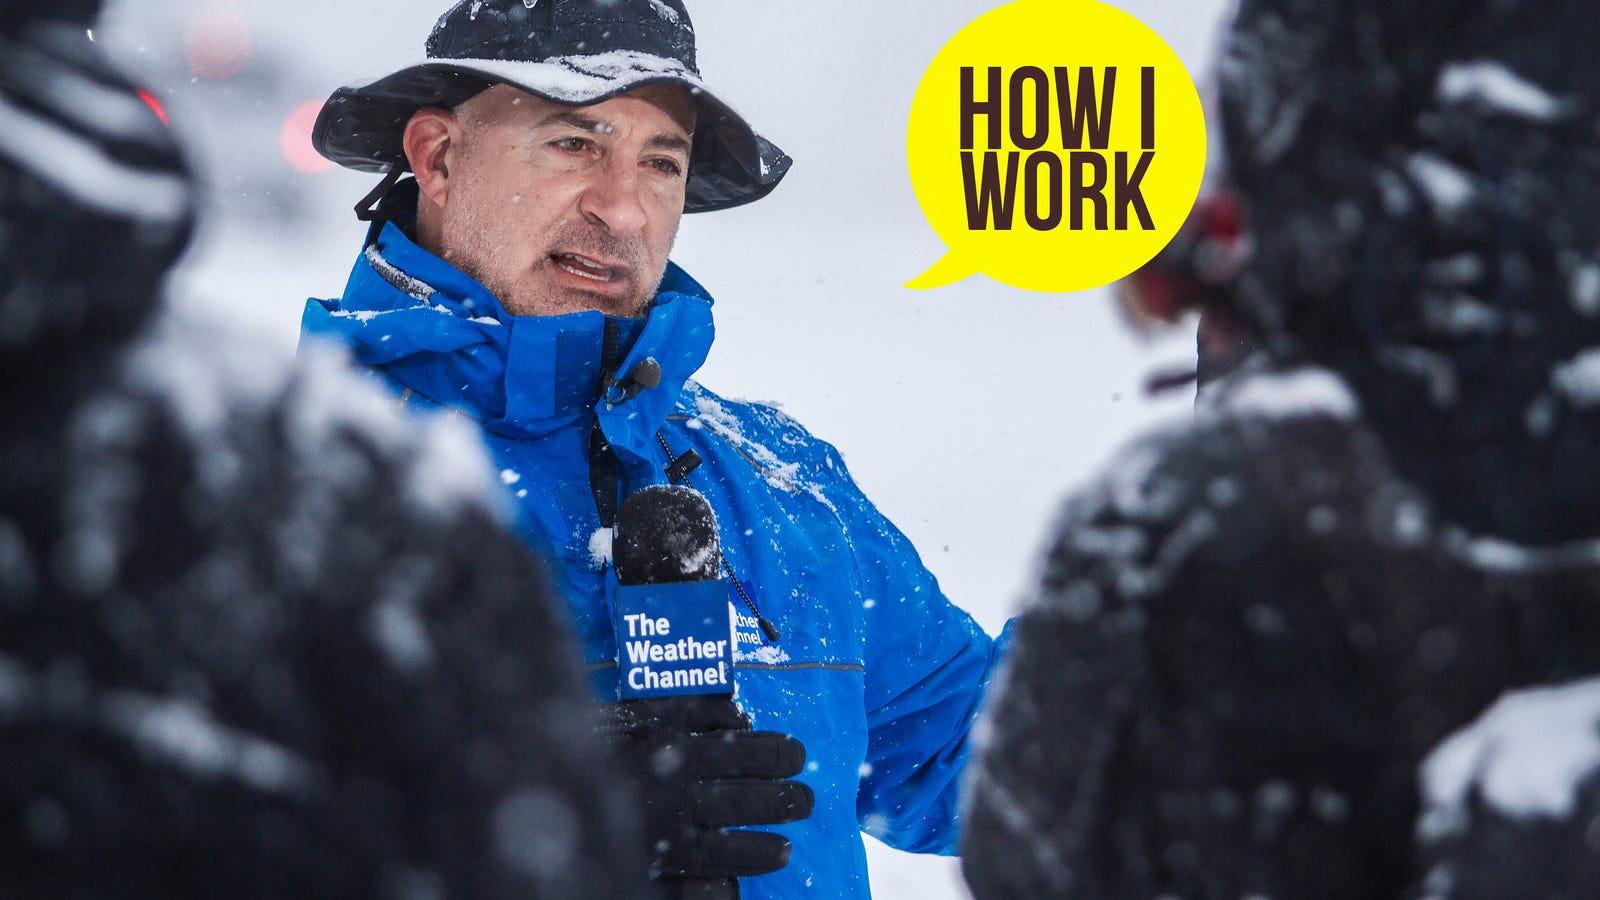 I'm Meteorologist Jim Cantore, and This Is How I Work